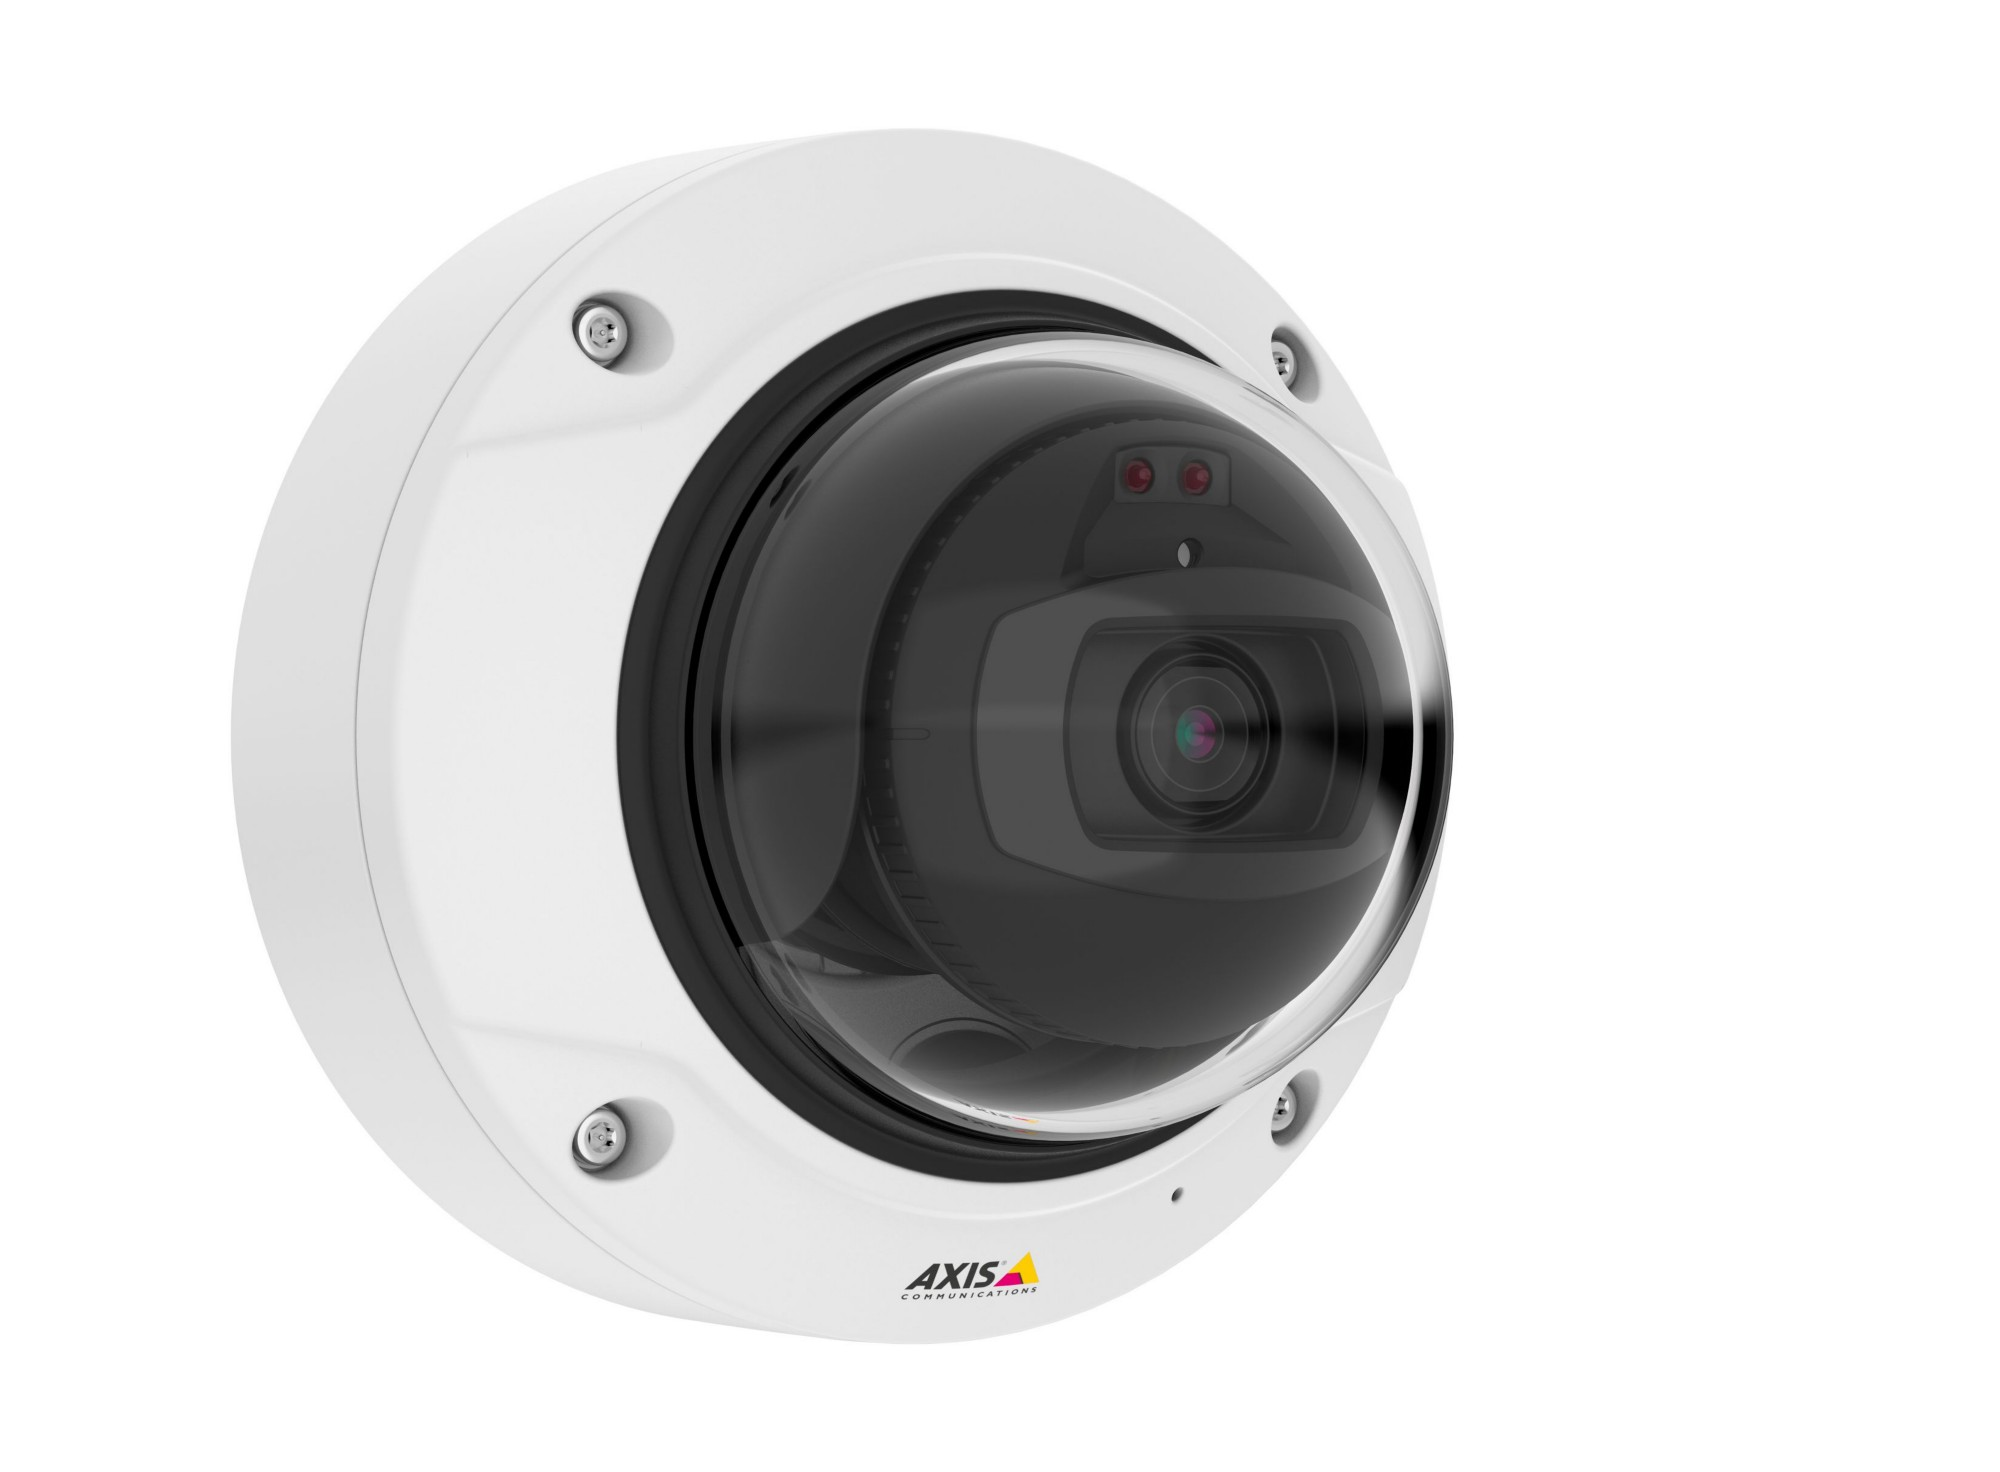 AXIS 01039-001 Q3515-LV IP SECURITY CAMERA INDOOR & OUTDOOR DOME WHITE 1920 X 1080PIXELS